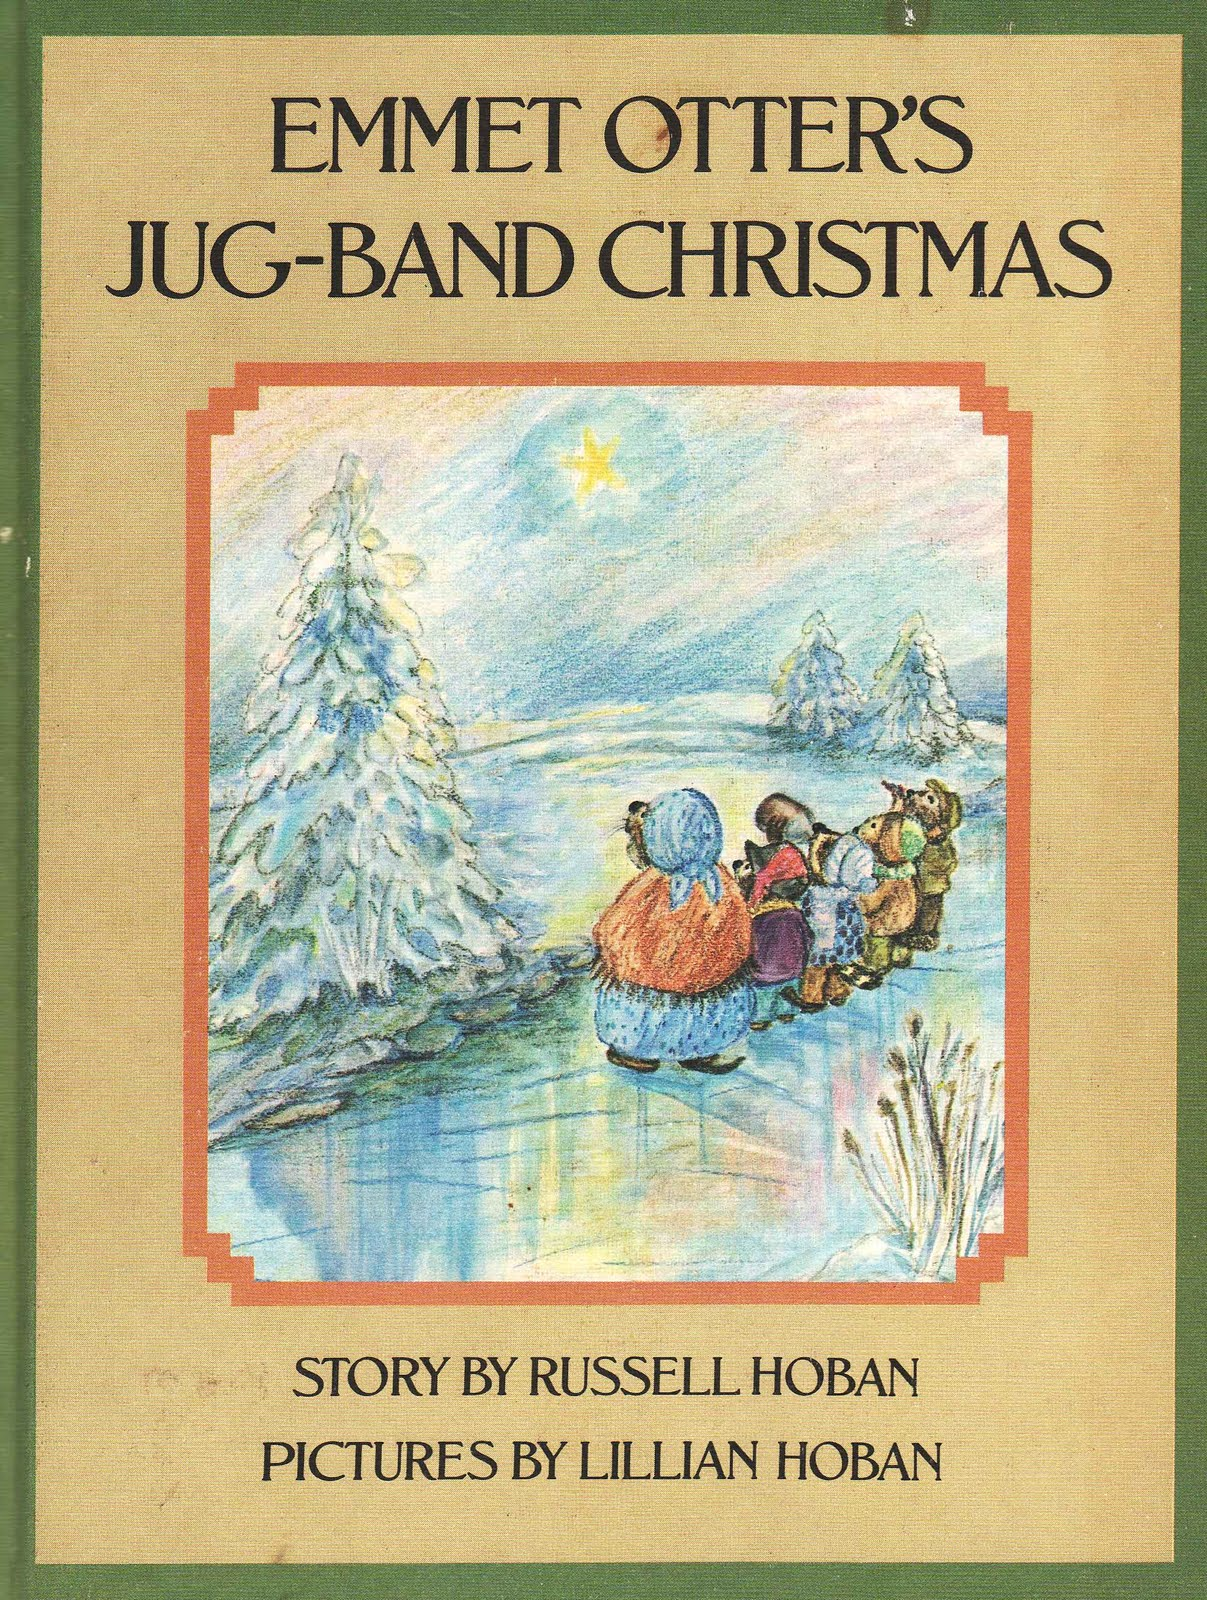 Vintage Kids\' Books My Kid Loves: Emmet Otter\'s Jug-Band Christmas